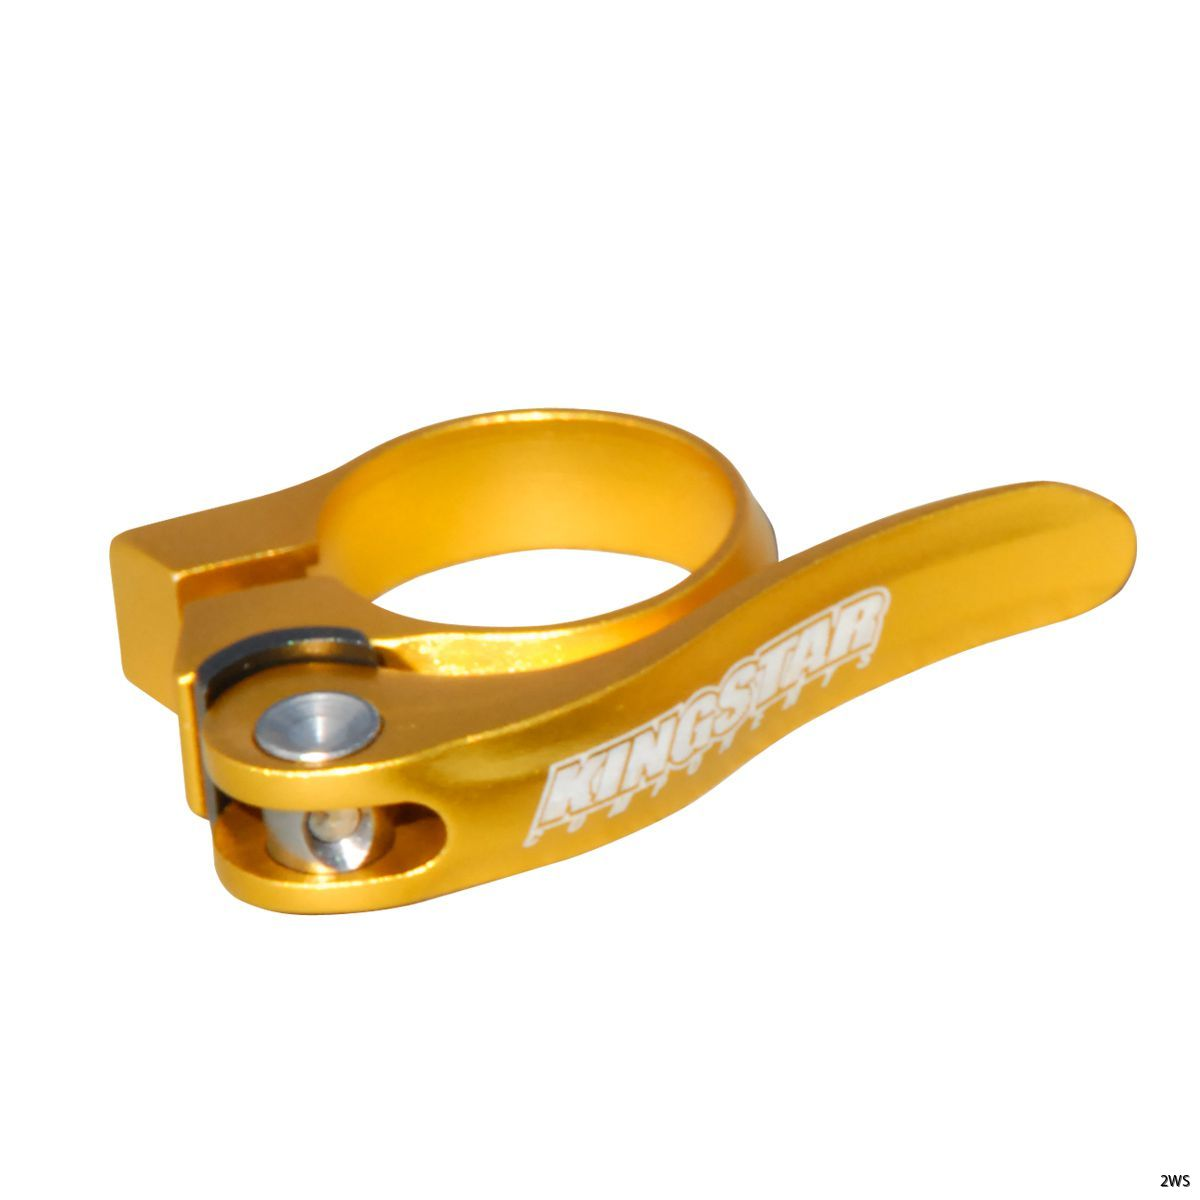 kingstar-seat-clamp-318mm gold